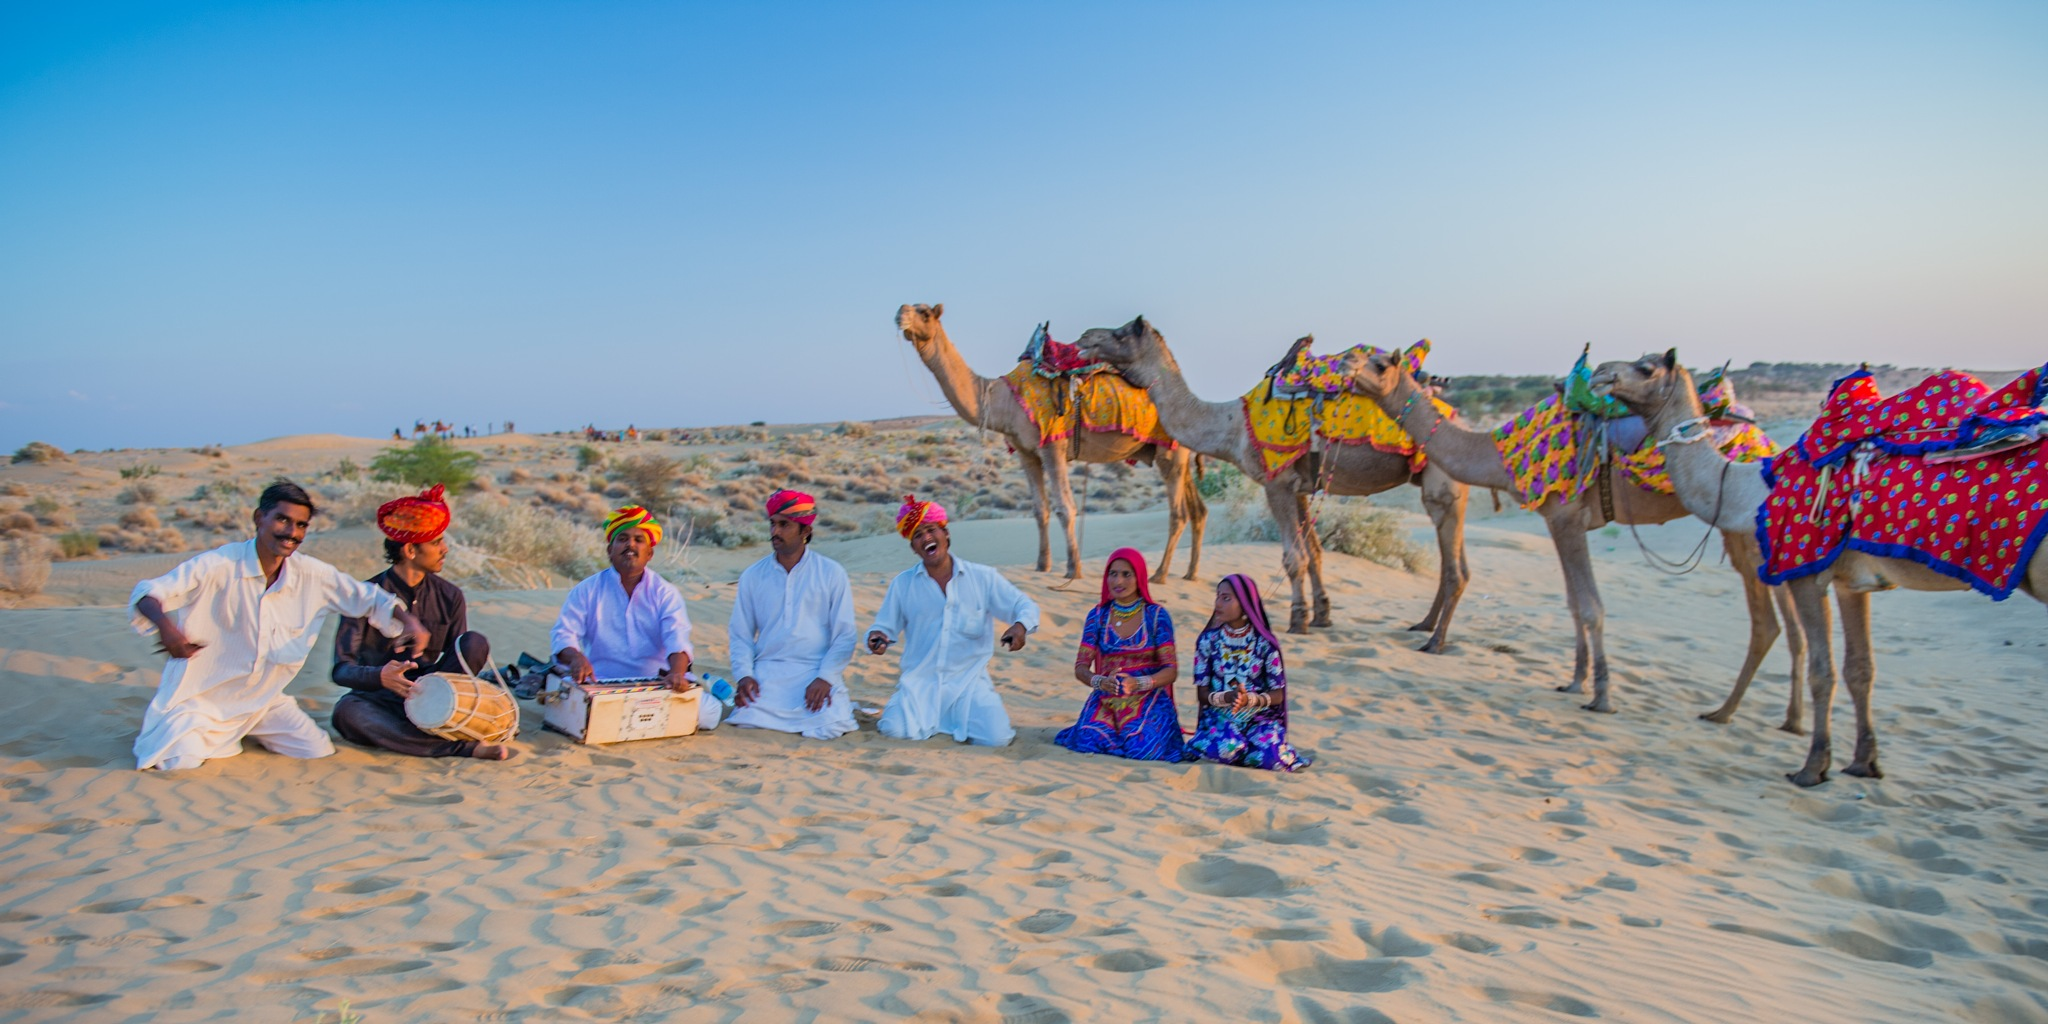 Jaisalmer Camal Ride by Susan Laurie